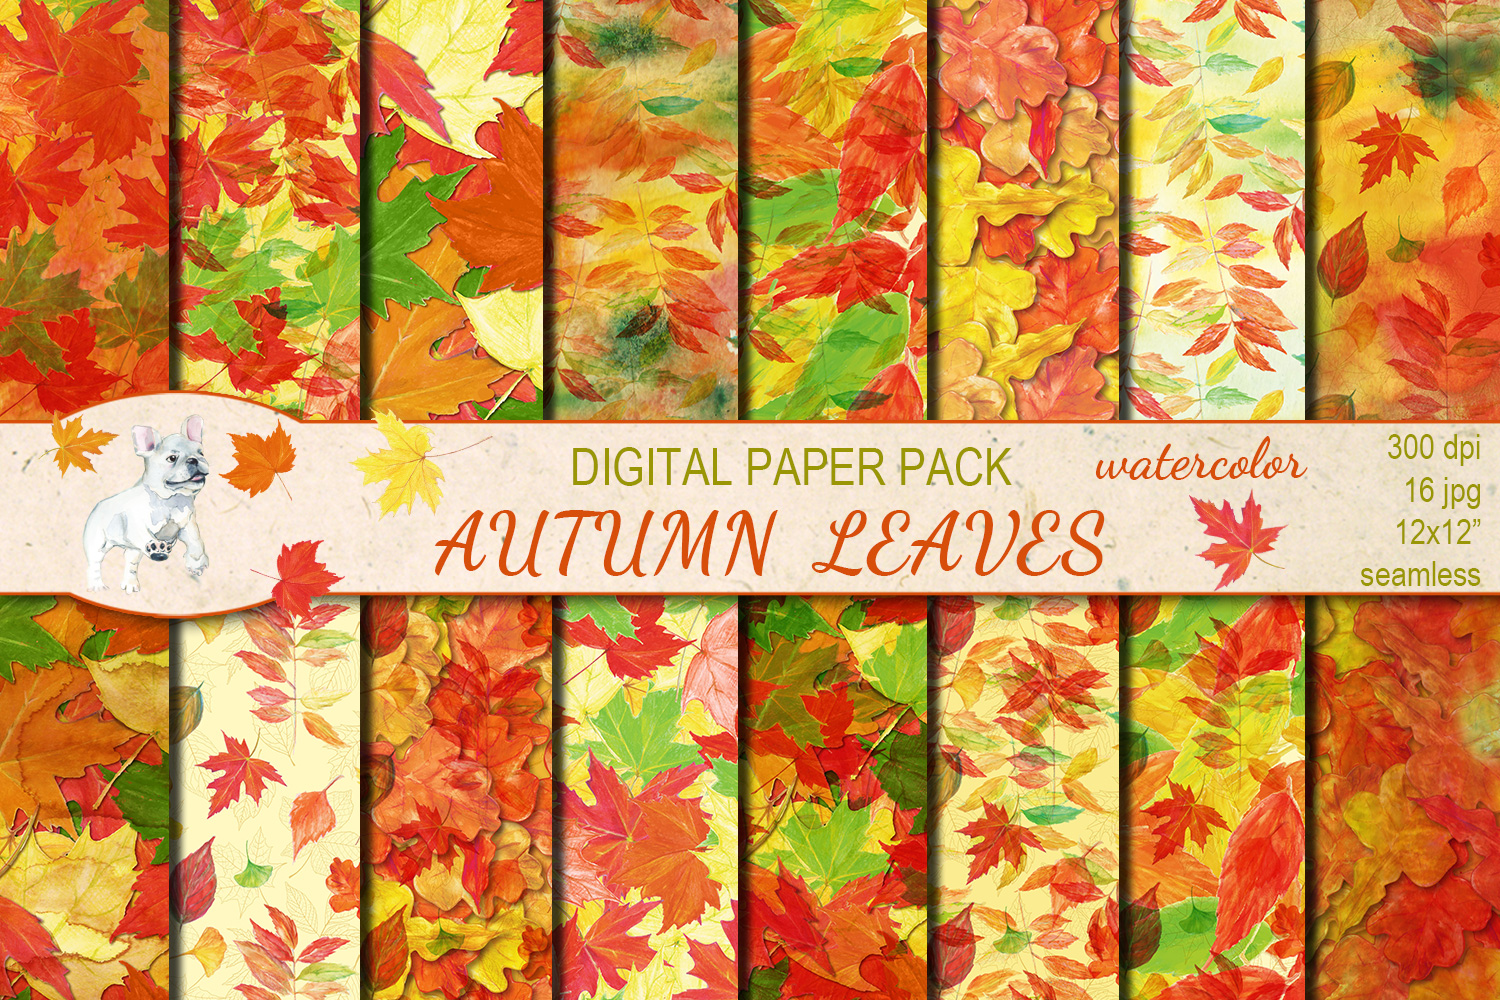 Autumn/ Fall Leaves seamless digital paper pack example image 1